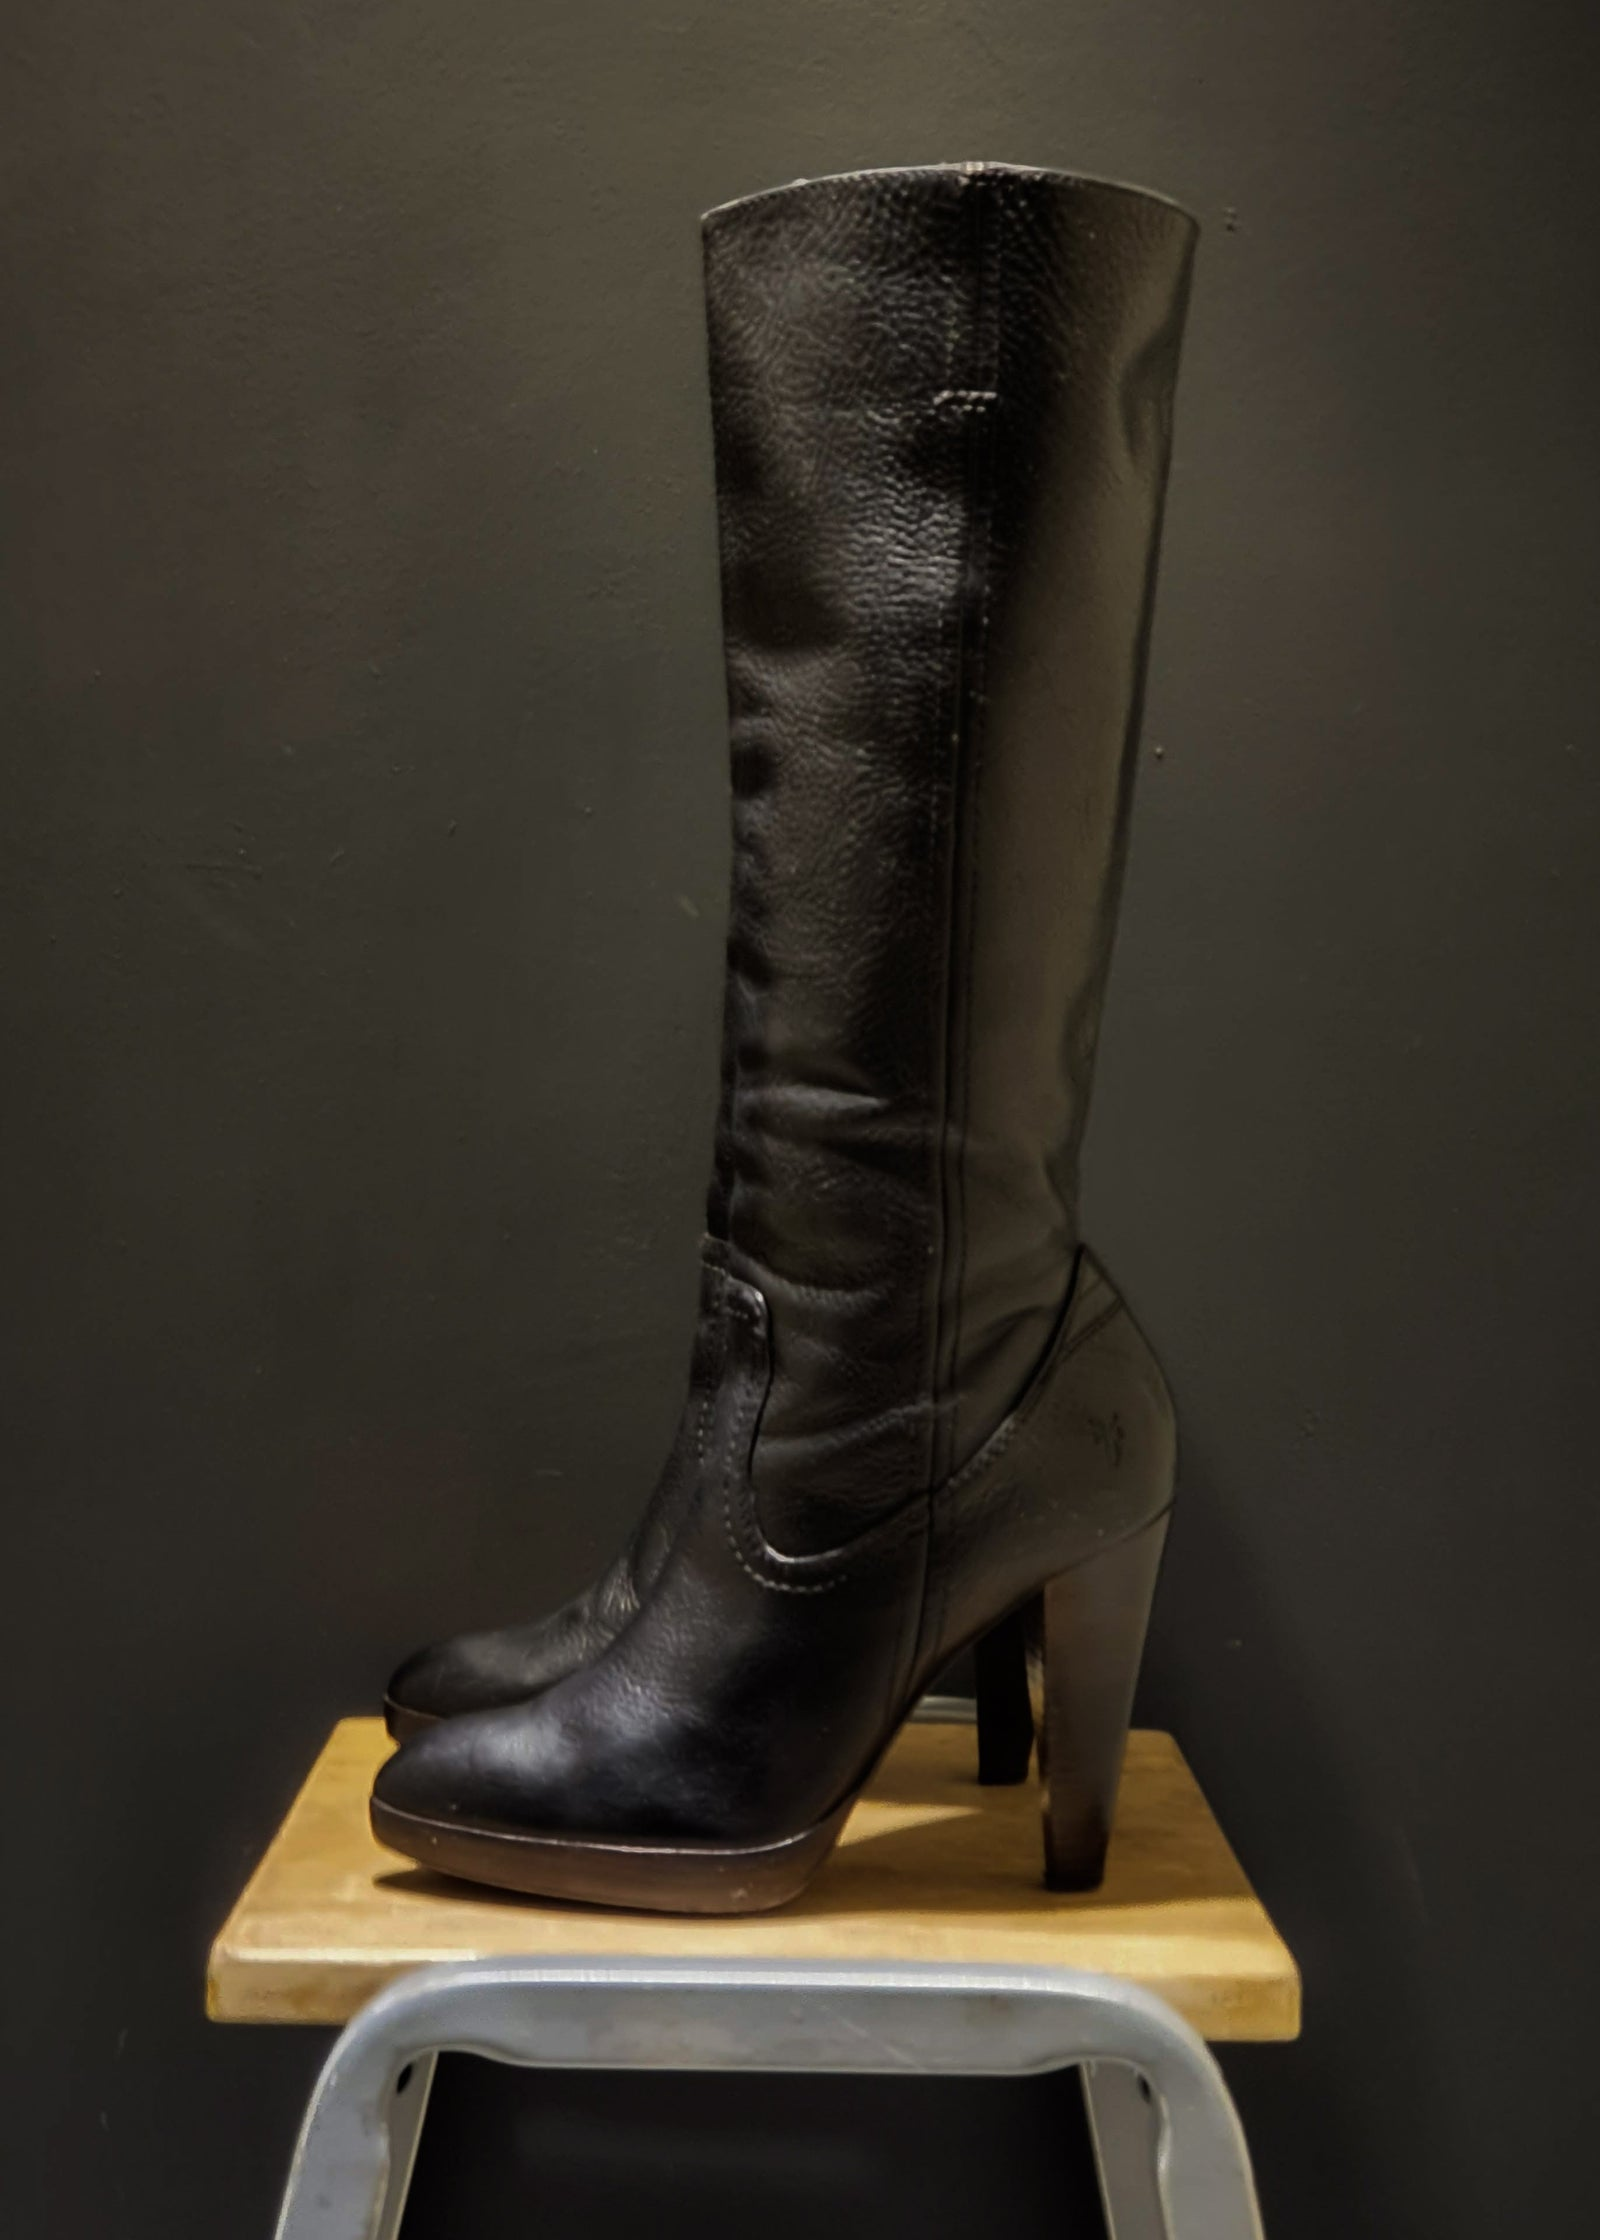 Preworn | Preloved <br> 'FRYE' <br>Harlow Campus Tall Boots <br>Size 7 UK